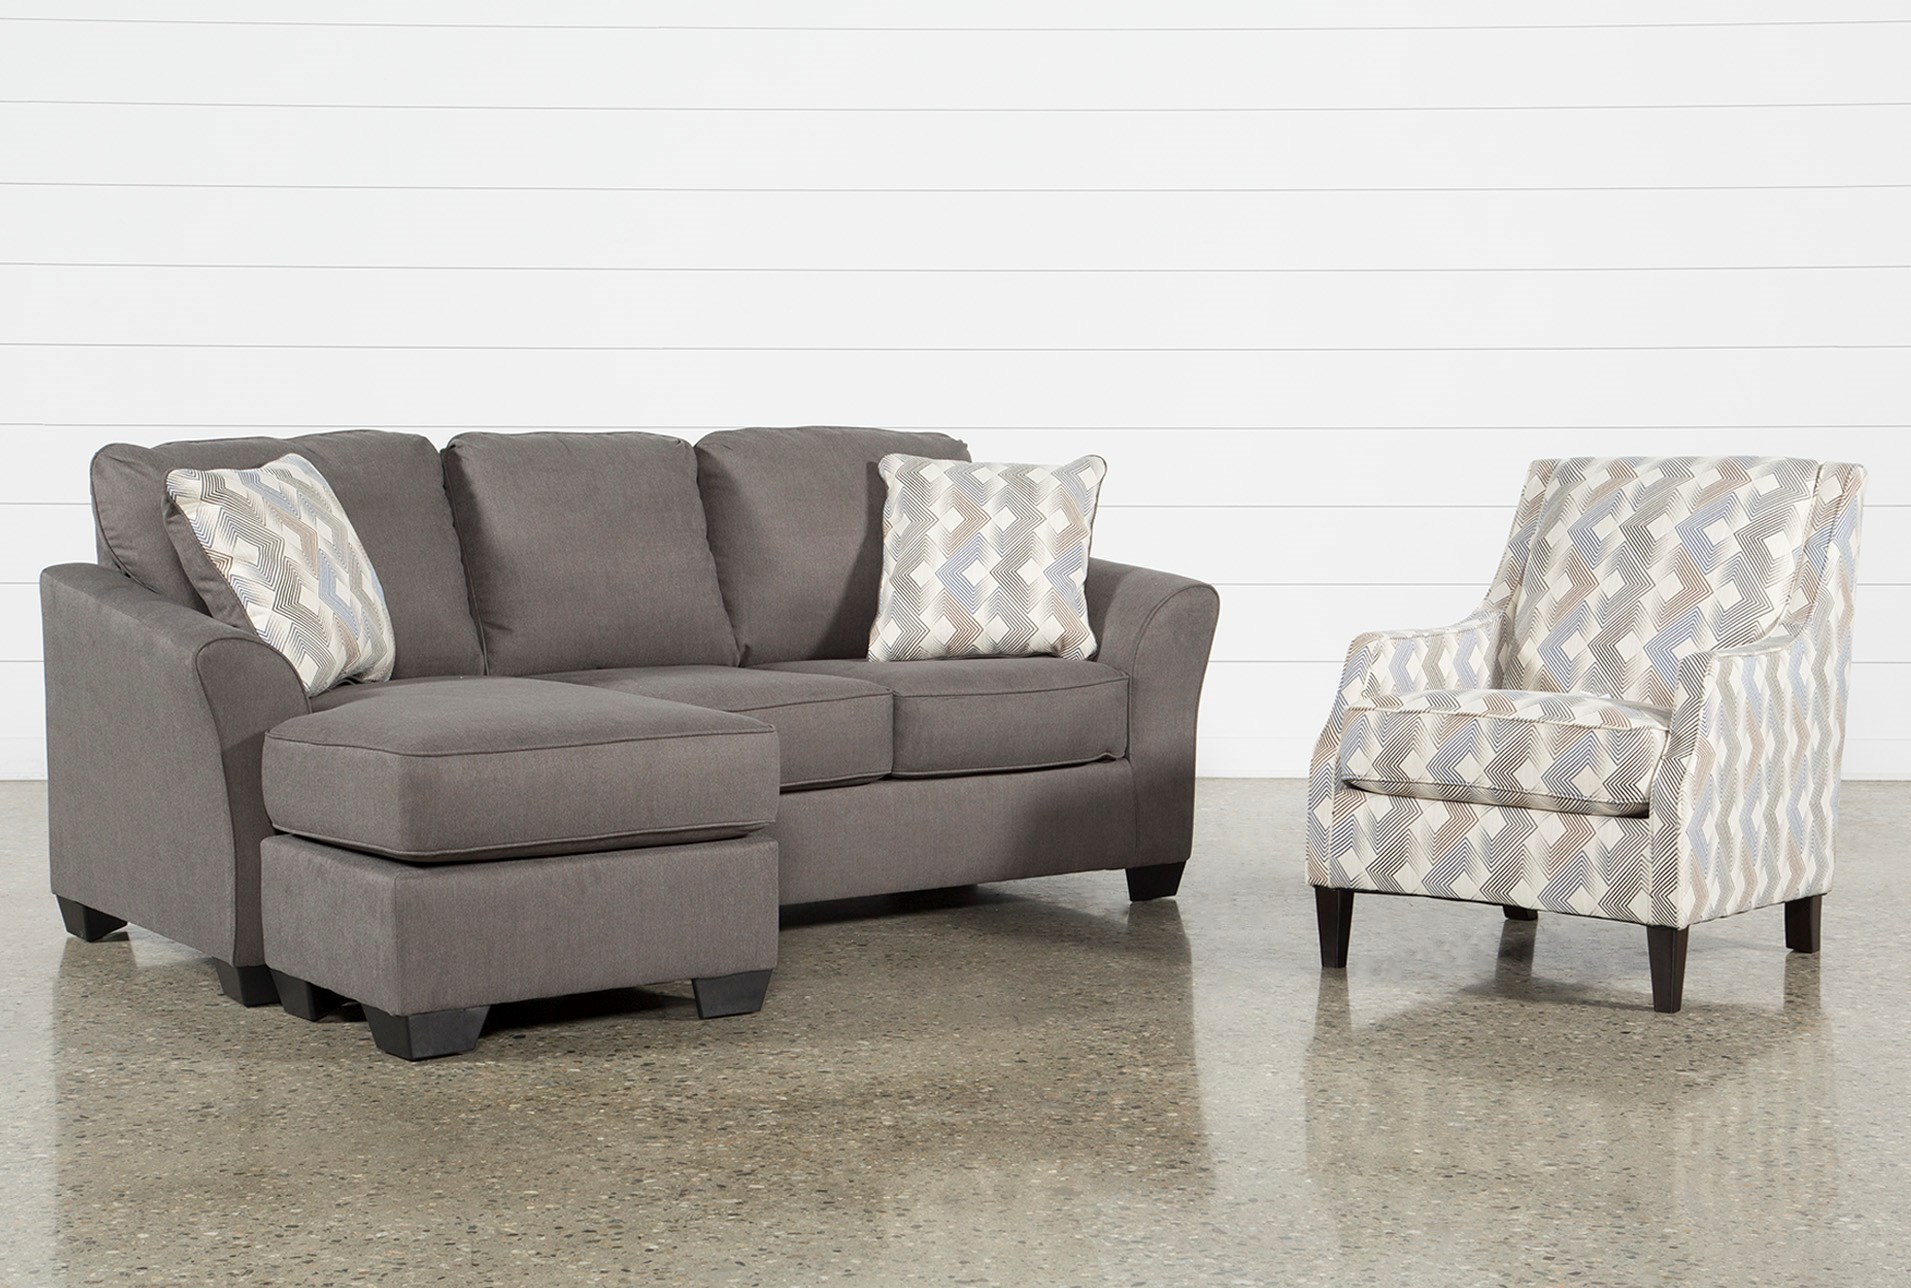 Tucker 2 piece living room set with queen sleeper and accent chair qty 1 has been successfully added to your cart